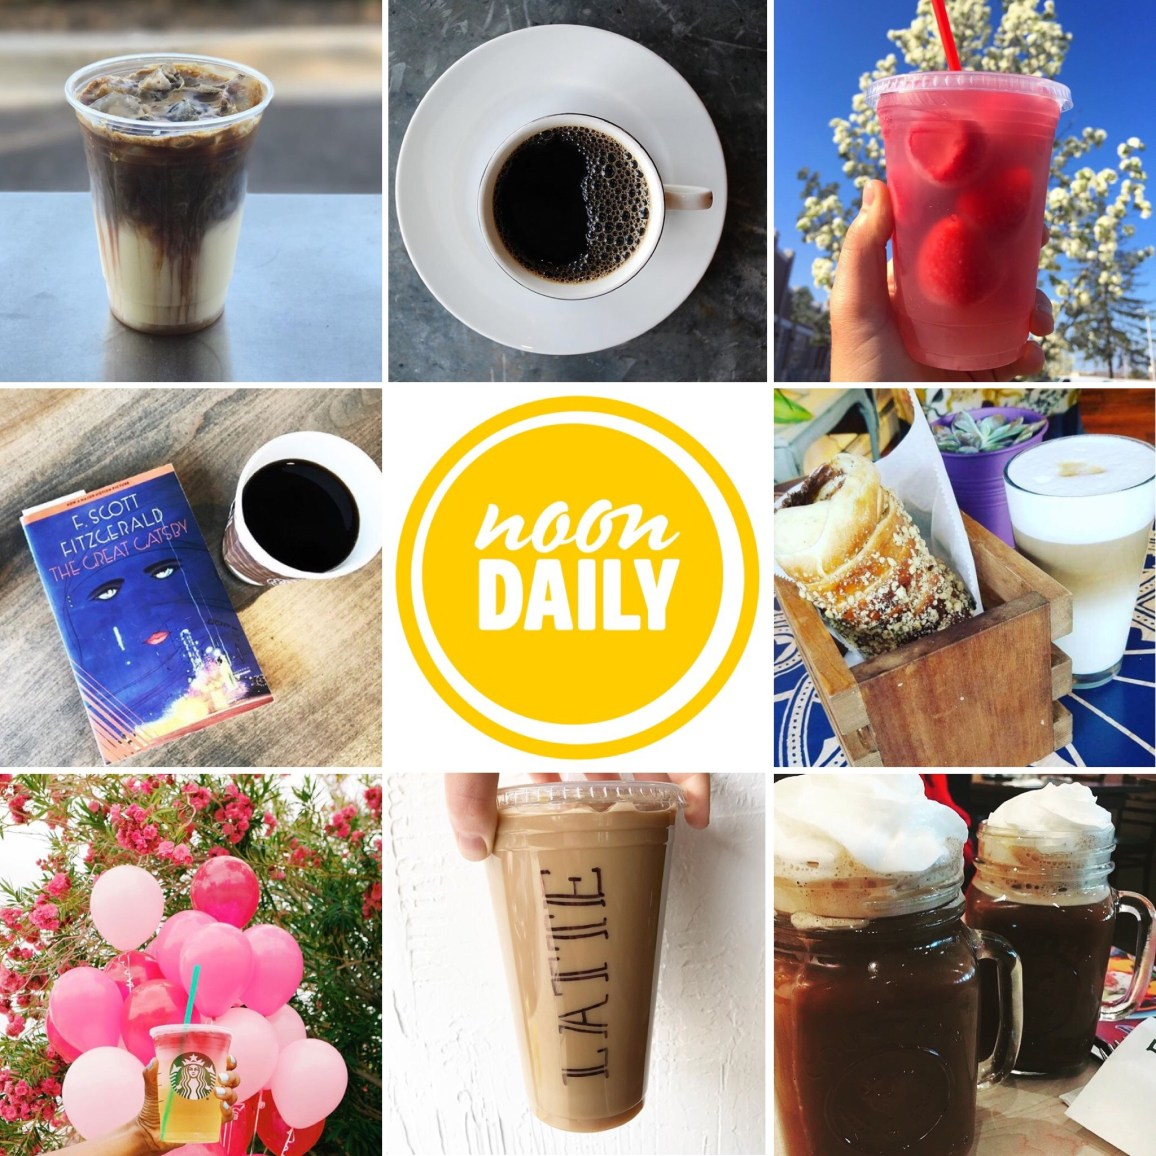 NoonDaily - 7.18.2017 - Cafes